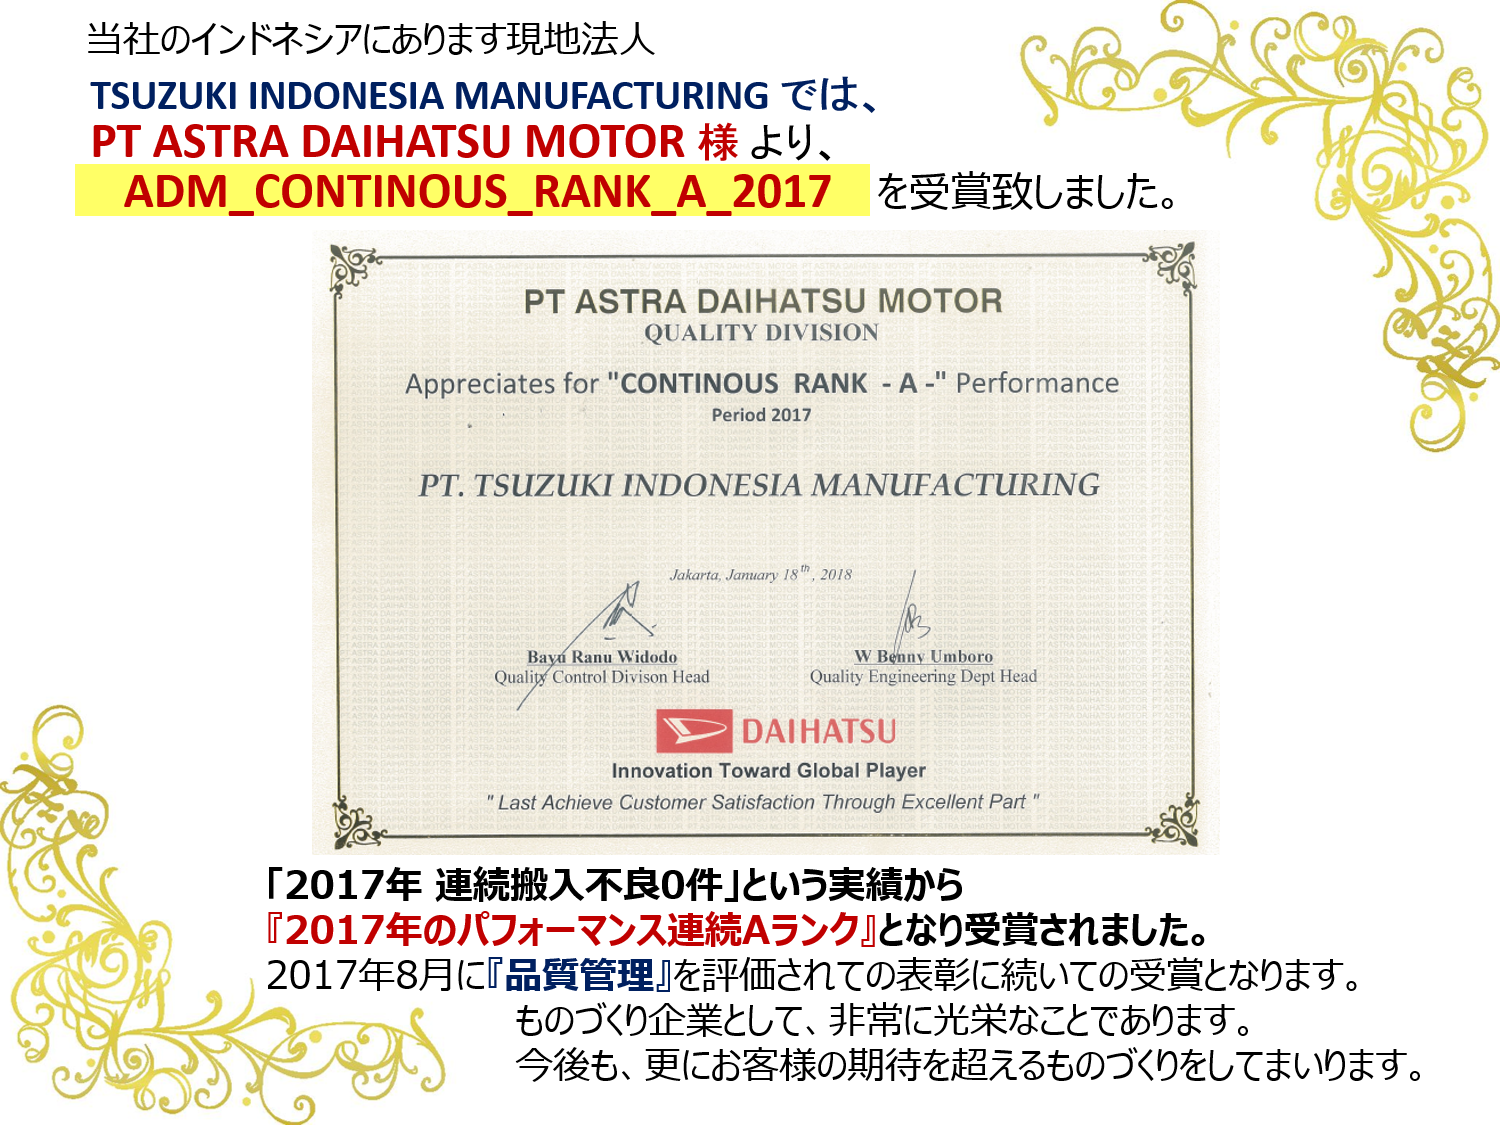 https://www.tsuzuki-mfg.co.jp/news/2c5a6ca0e1a941b63352440989301a45a6a04019.png